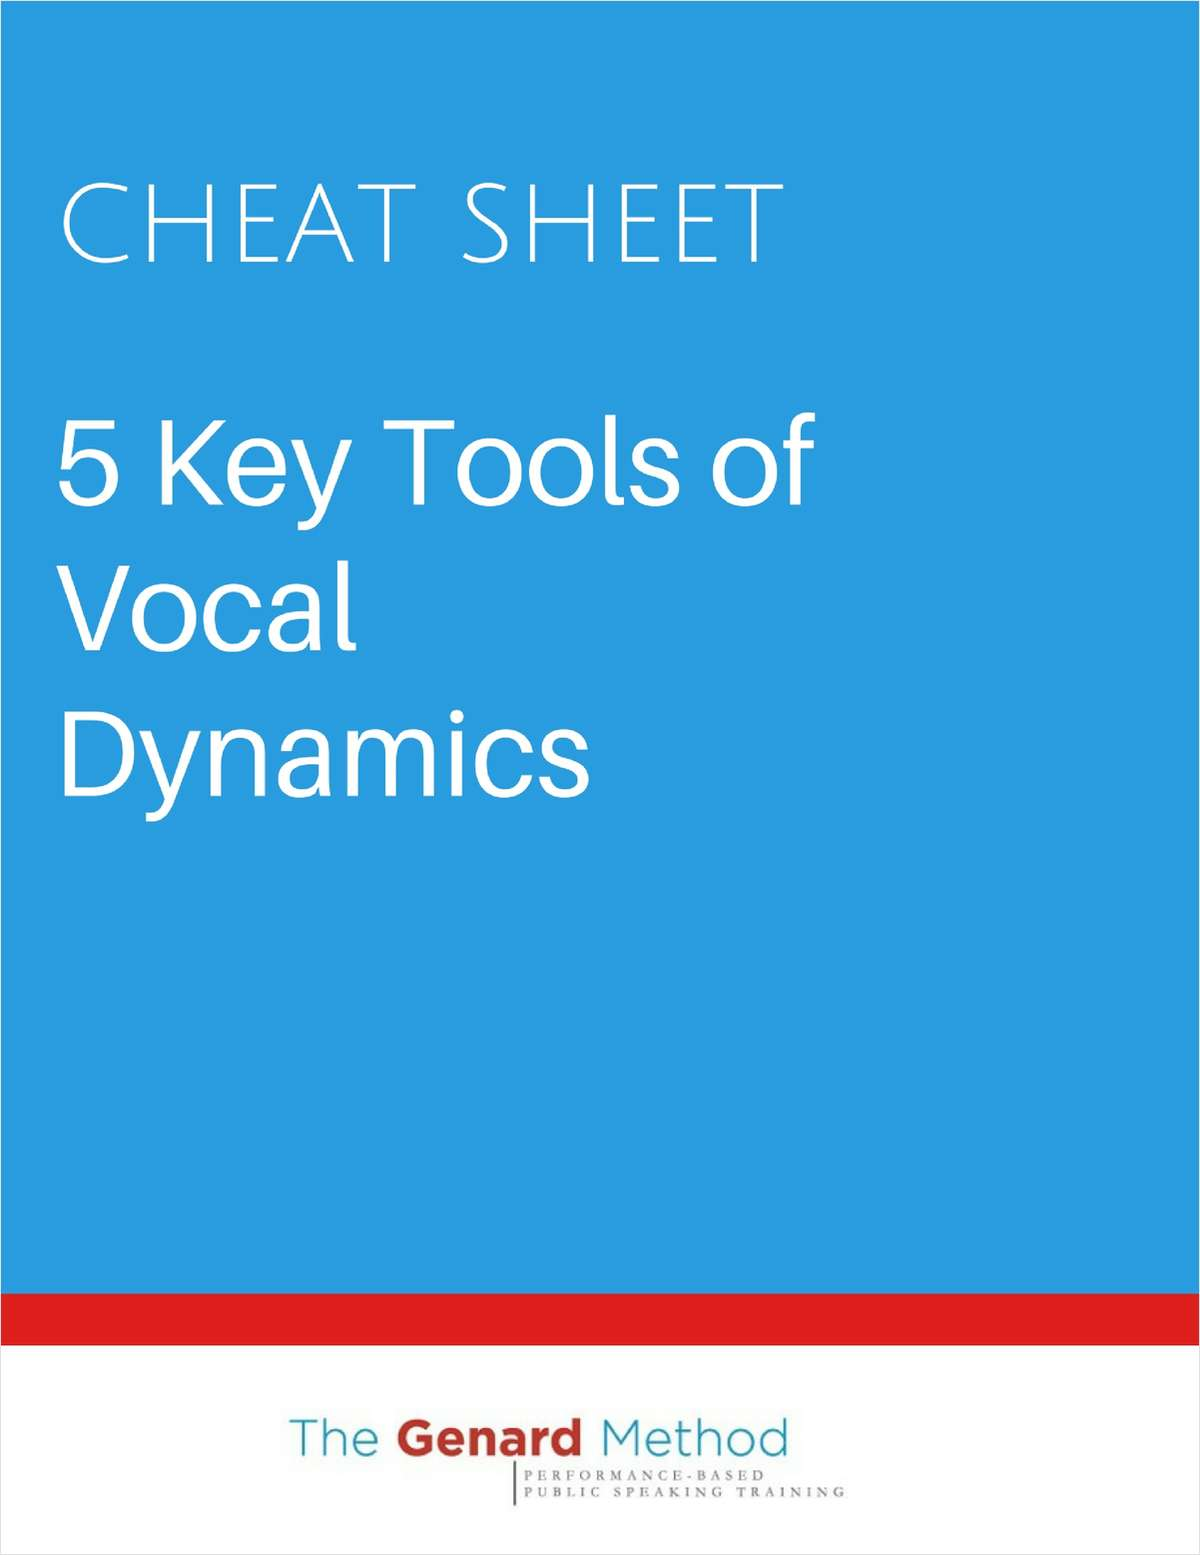 5 Key Tools of Vocal Dynamics